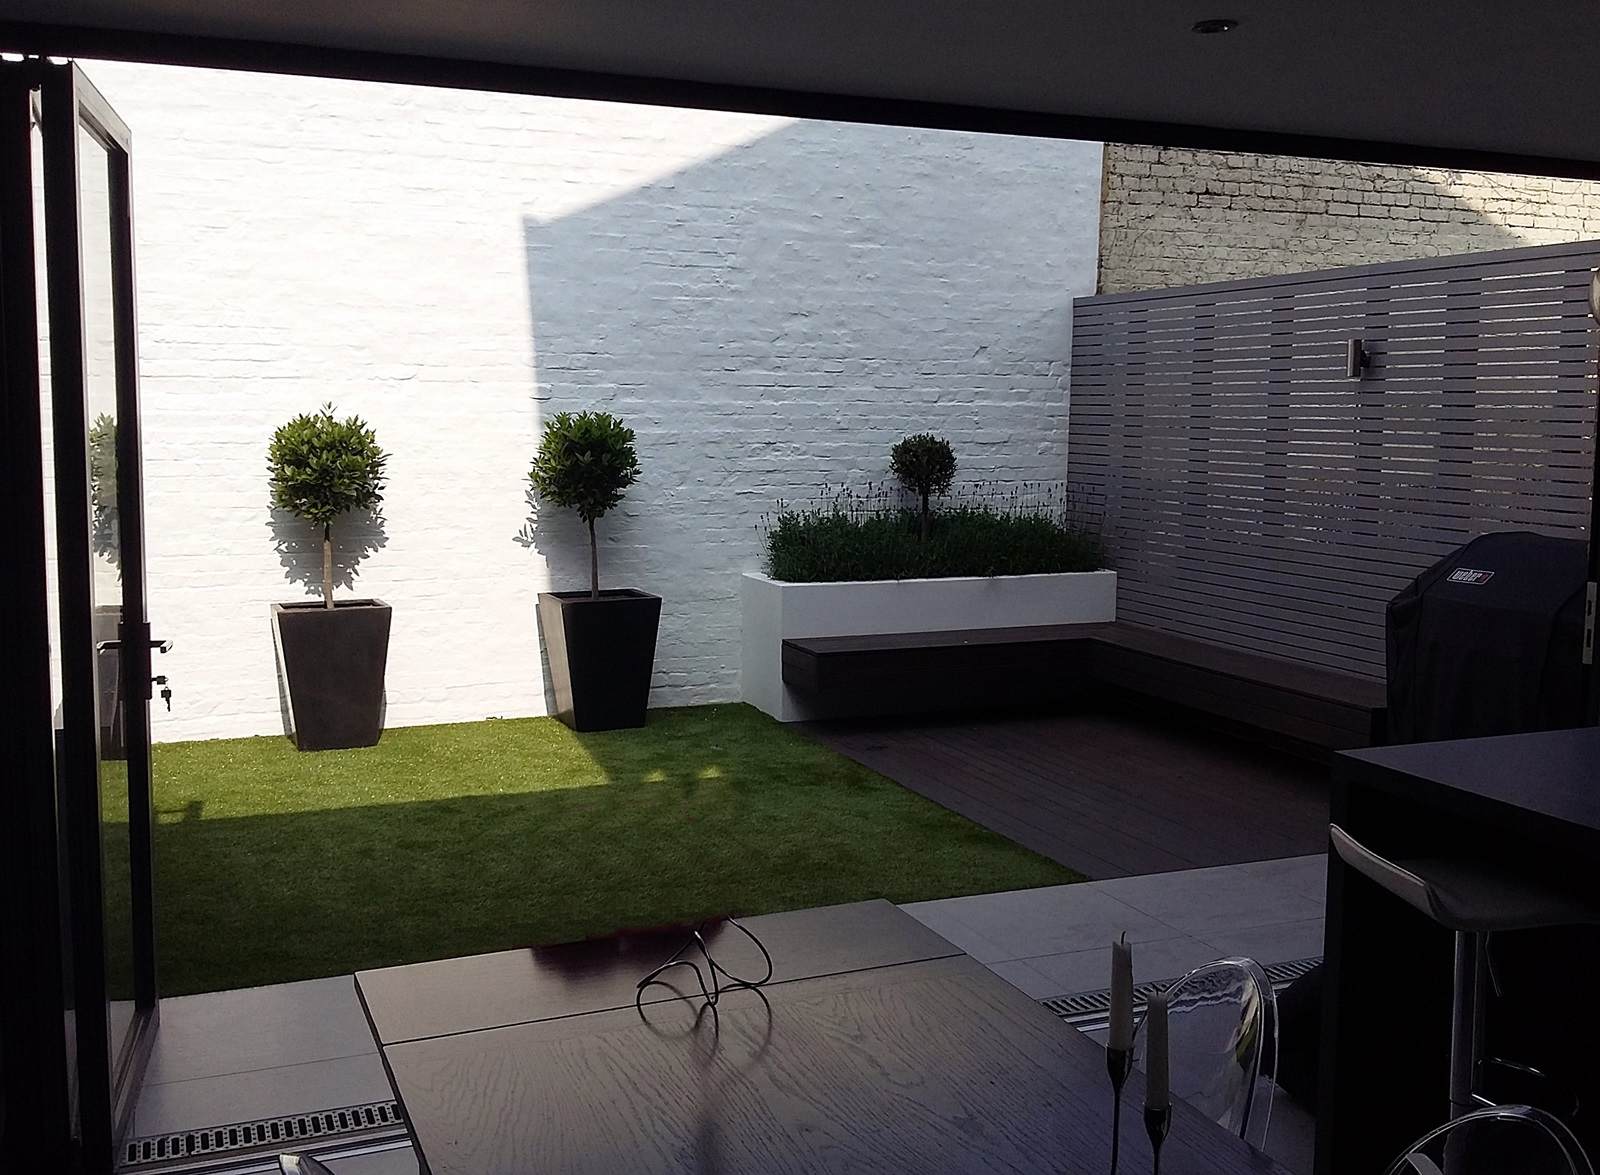 Small garden design in putney london london garden blog for Small modern garden design ideas